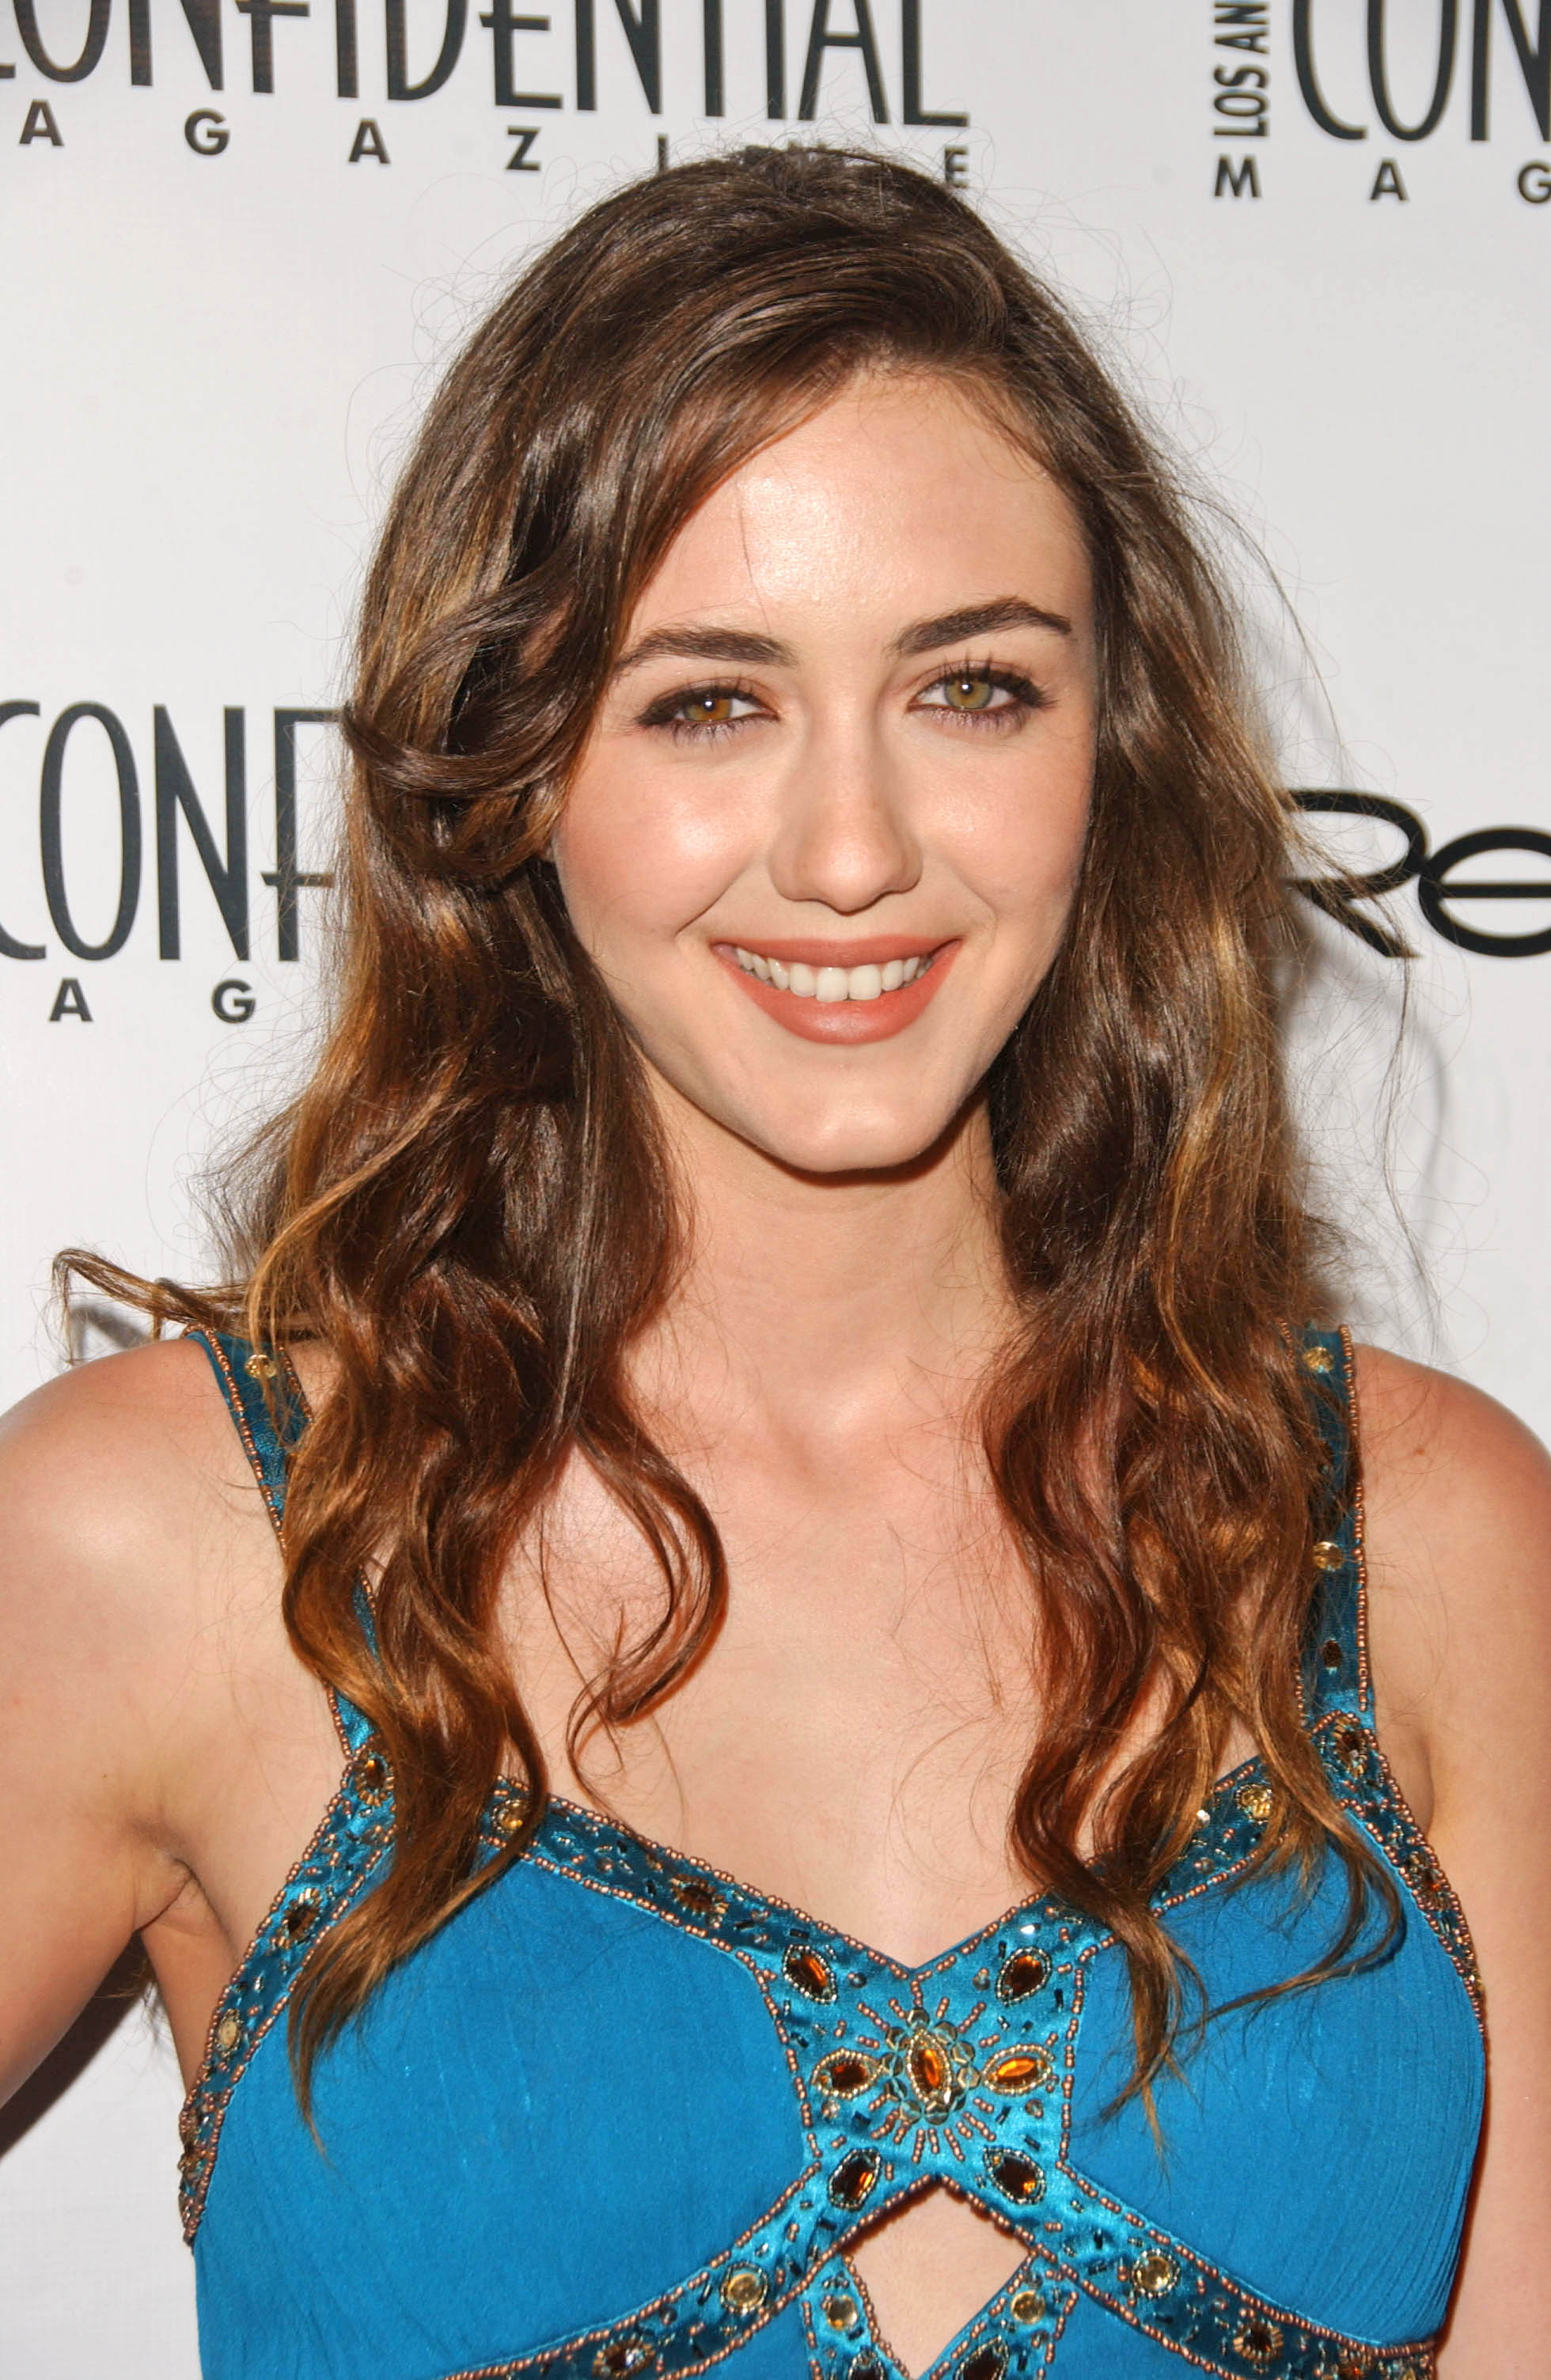 madeline zima plays mia the sexy 16 year old who slept with hank moody and stole his book